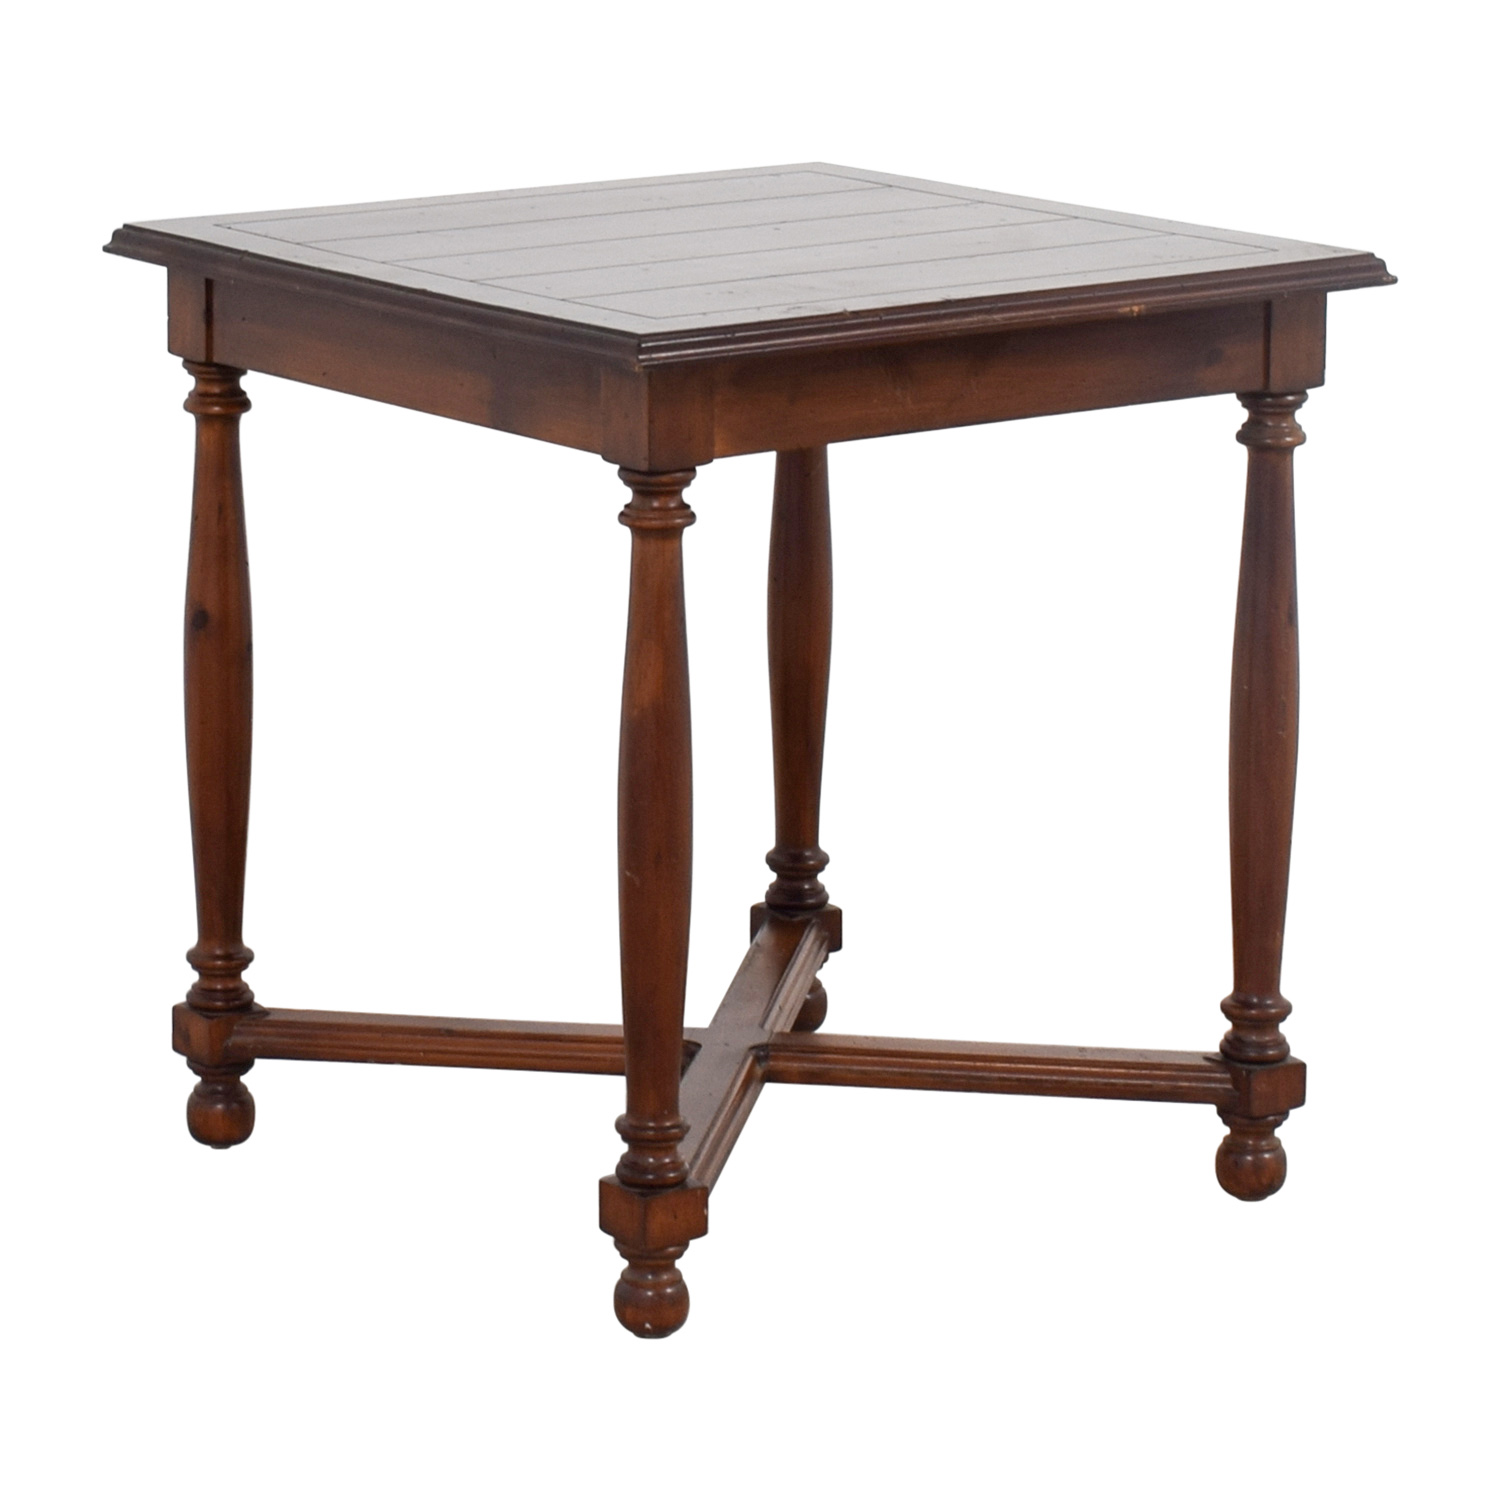 shop Furniture Masters Crossed Base End Table Furniture Masters End Tables